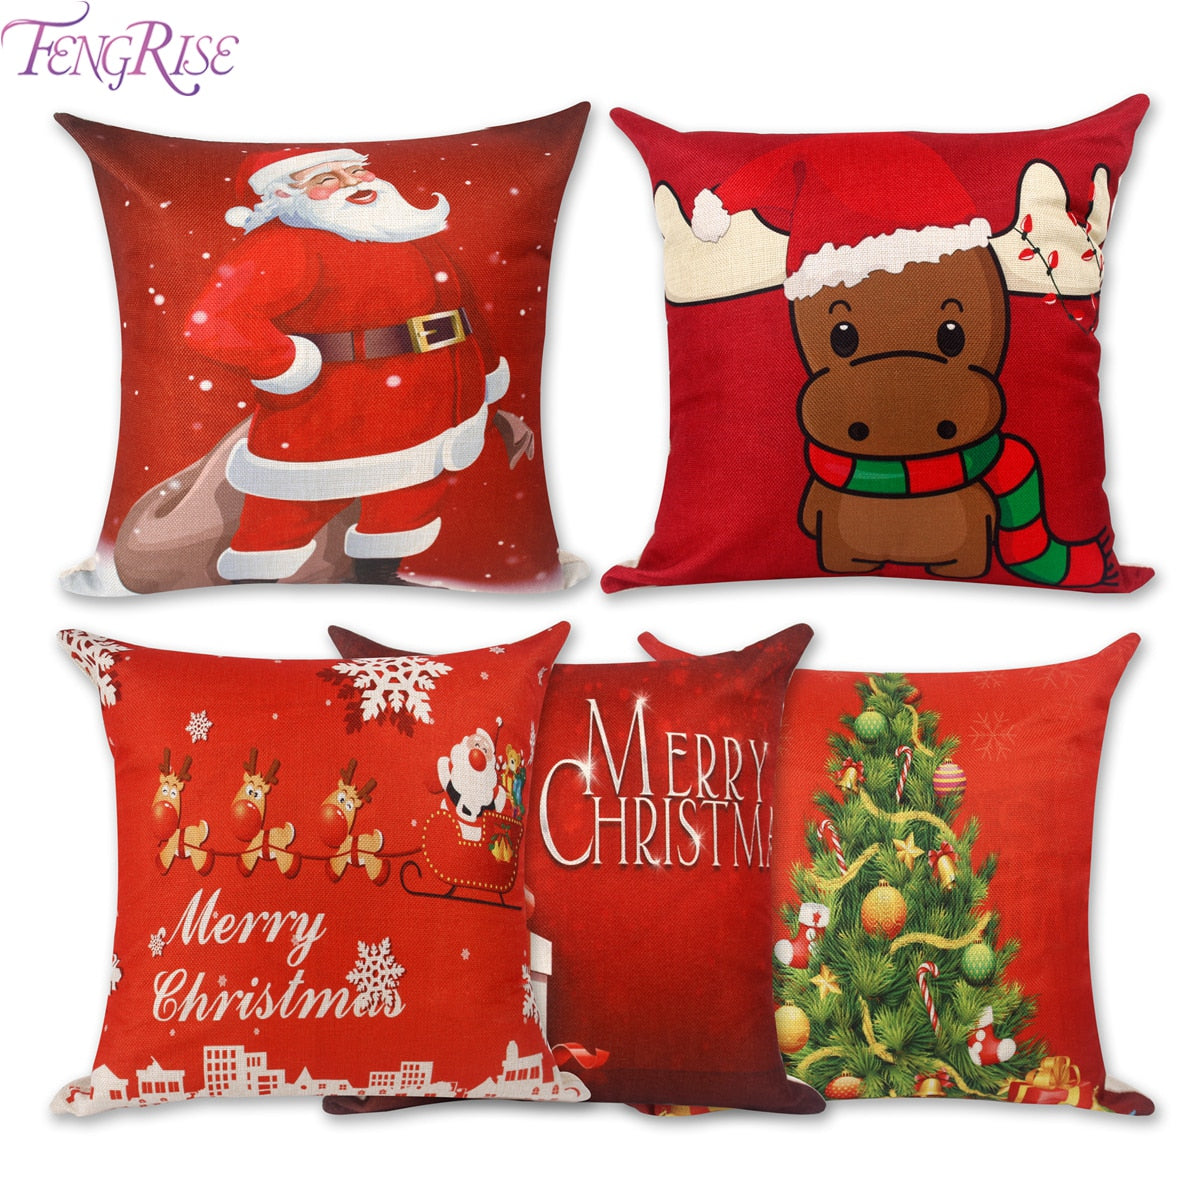 FENGRISE Merry Christmas Decoration For Home Santa Claus Reindeer Pillow Case Christmas 2019 Xmas Navidad Happy New Year 2020